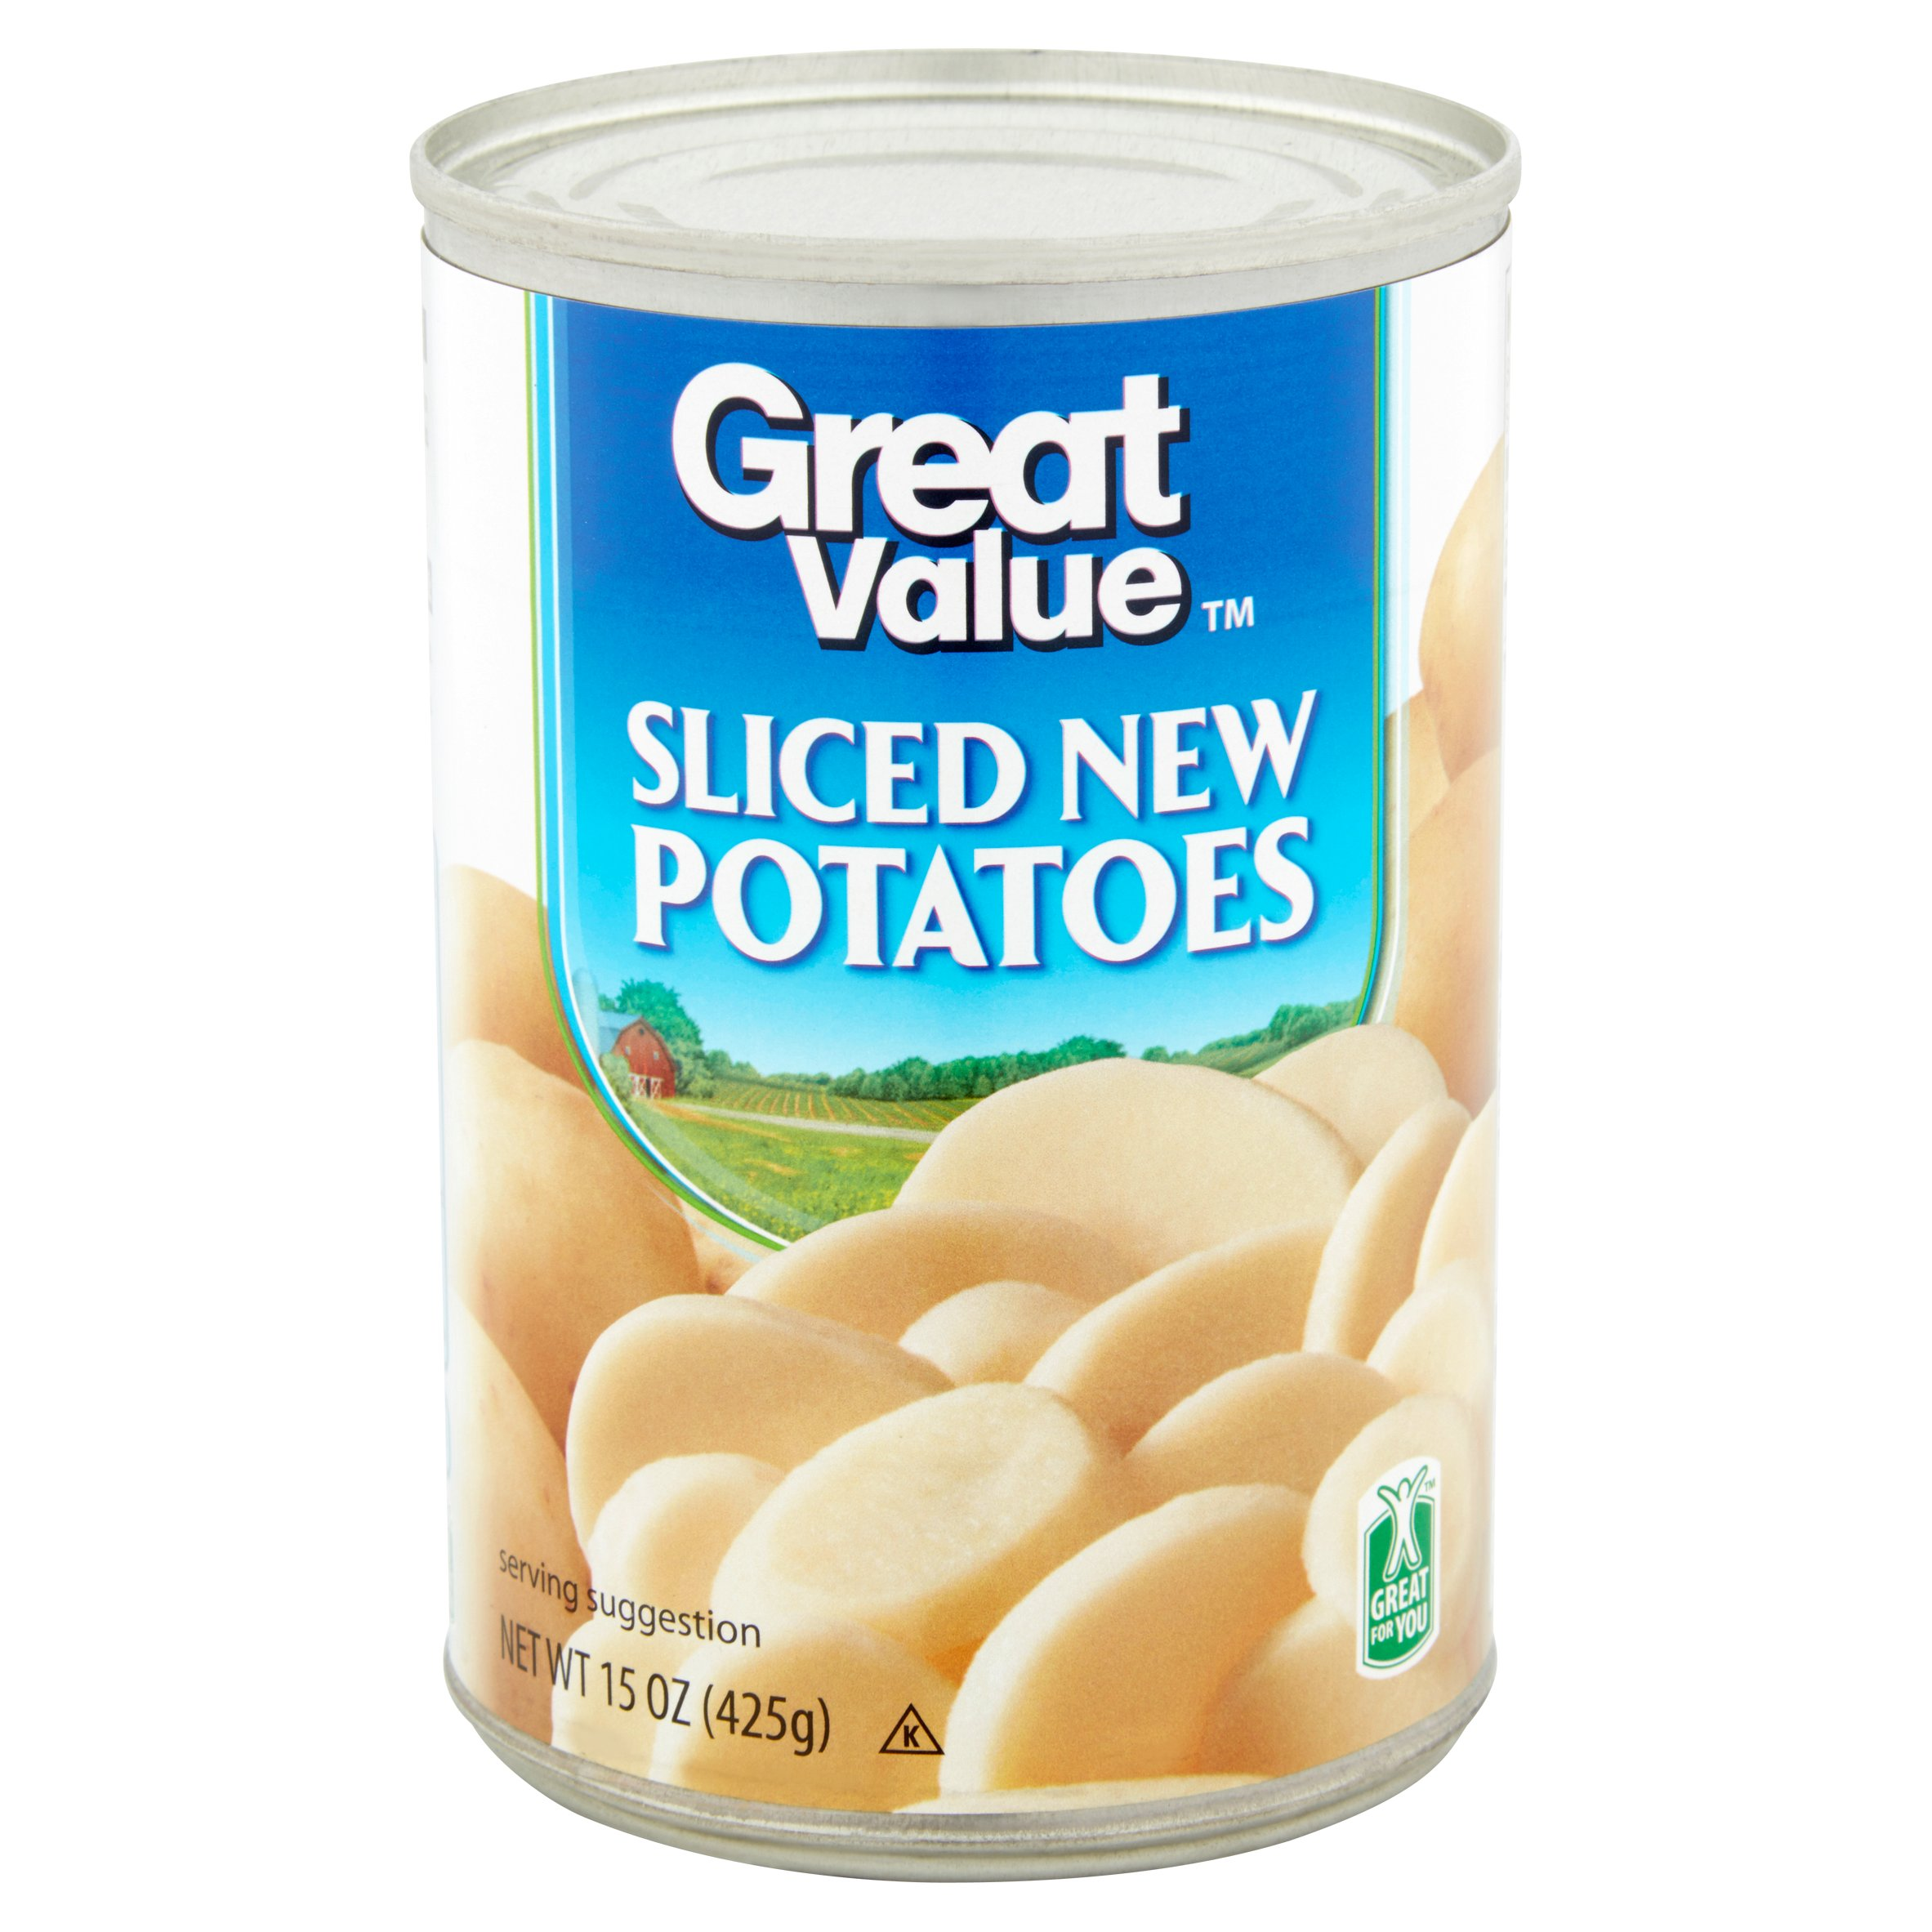 Great Value Sliced Potatoes, 15 Oz